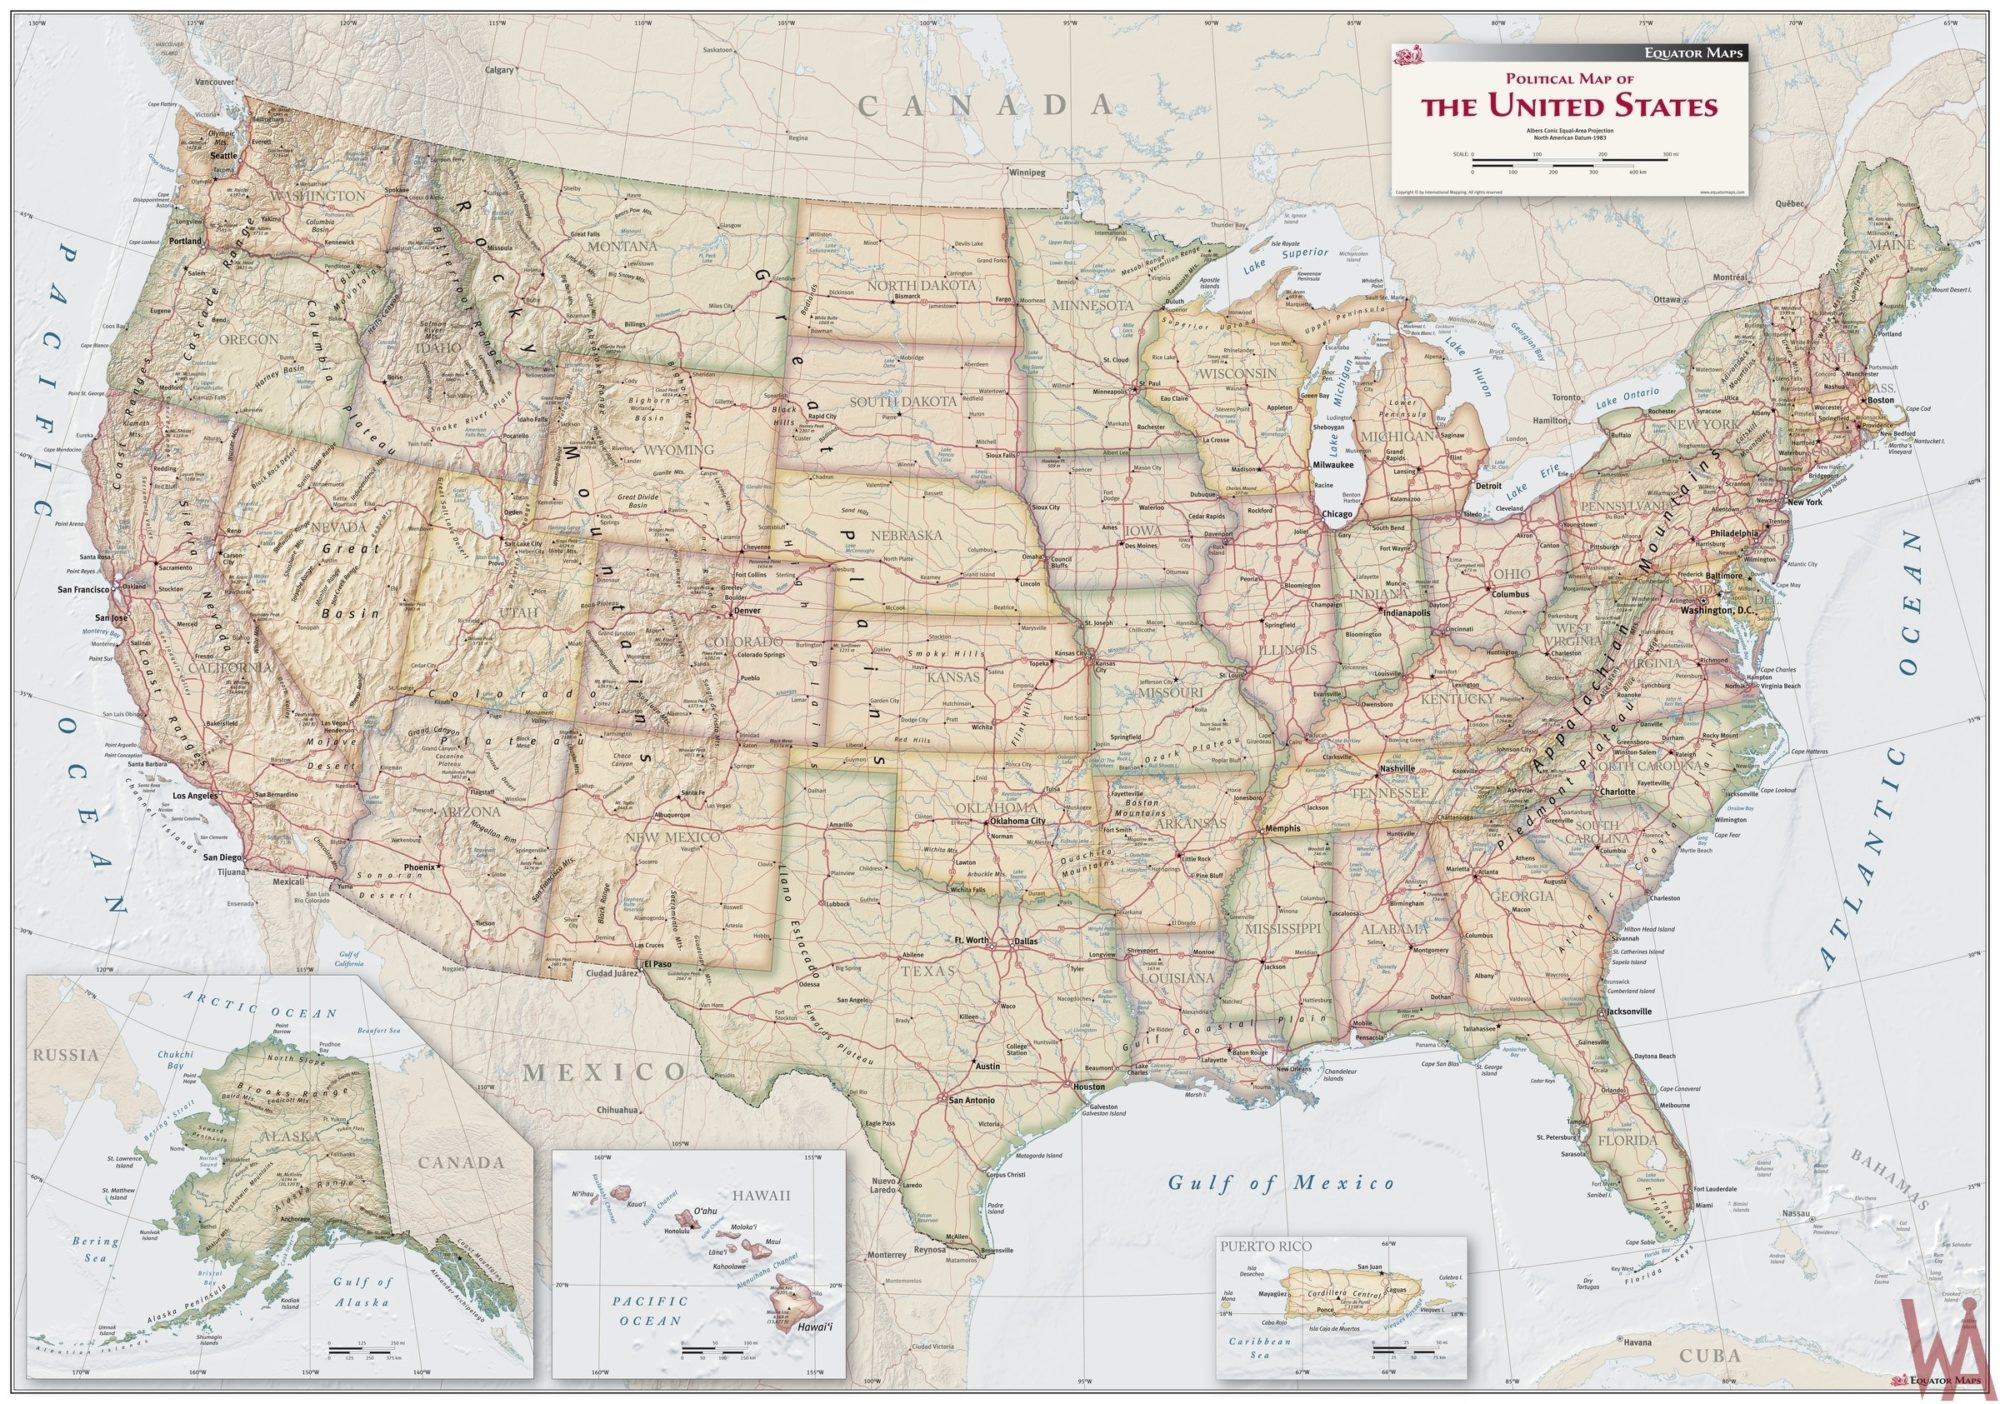 antique style political wall map of the USA